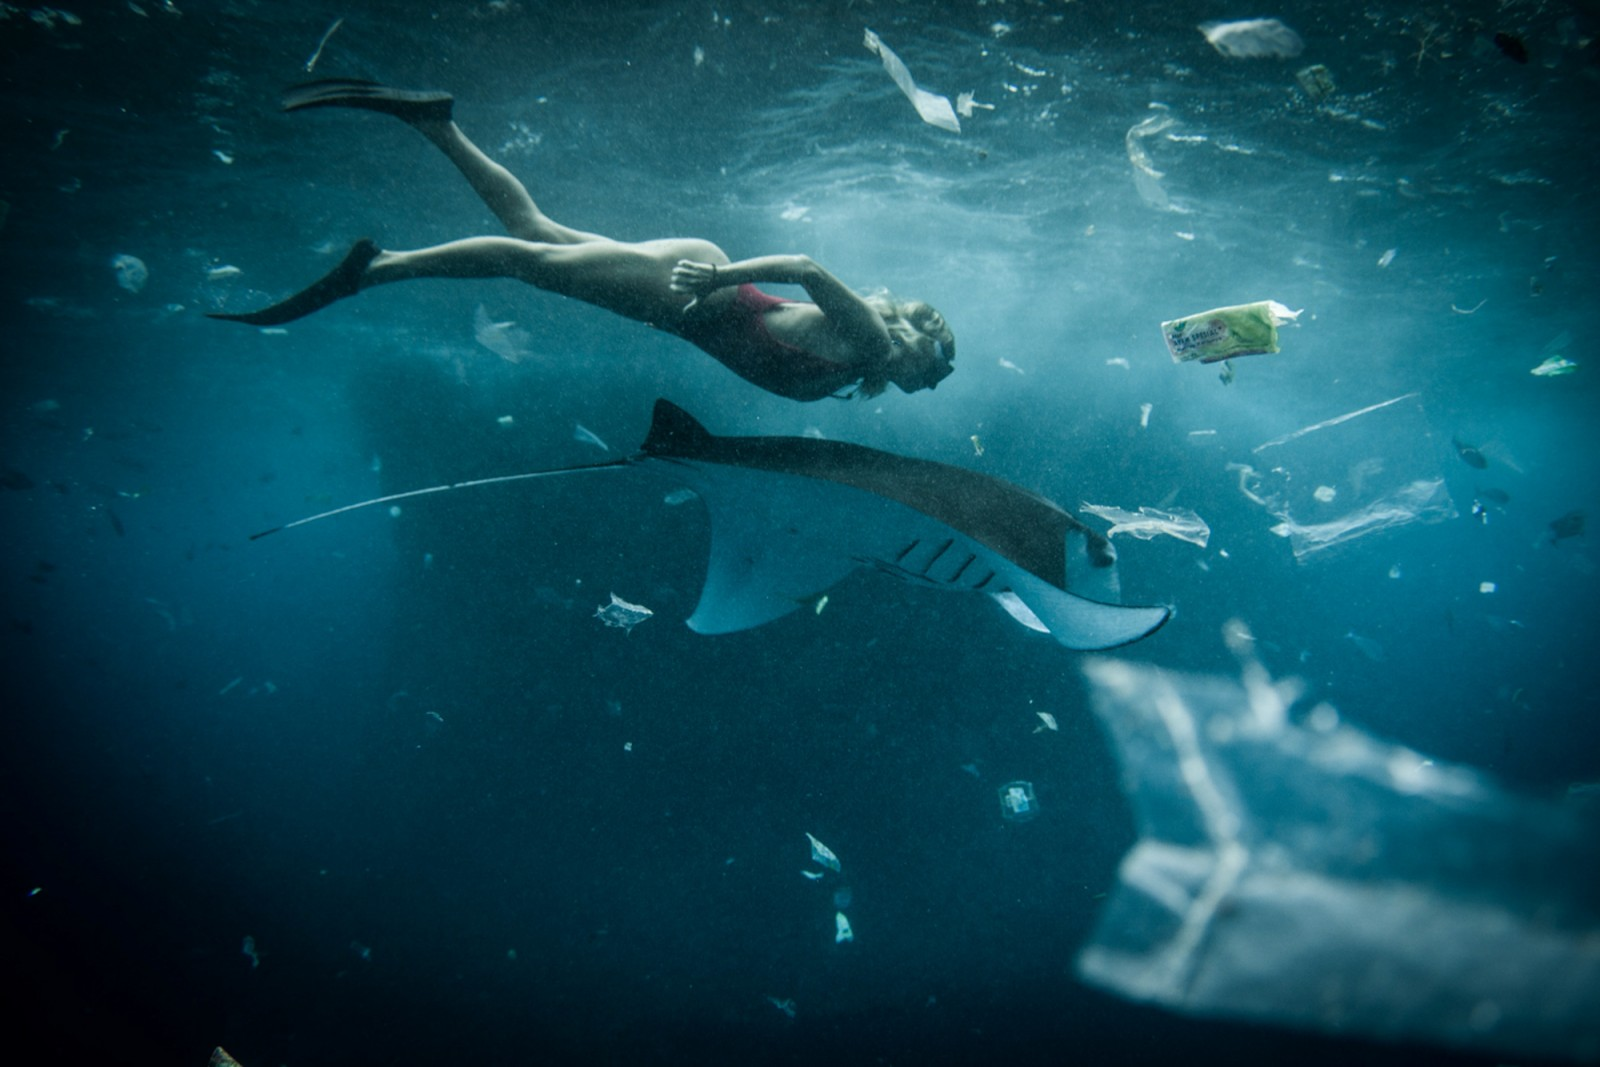 A snorkeler swims with a manta ray in an ocean of trash